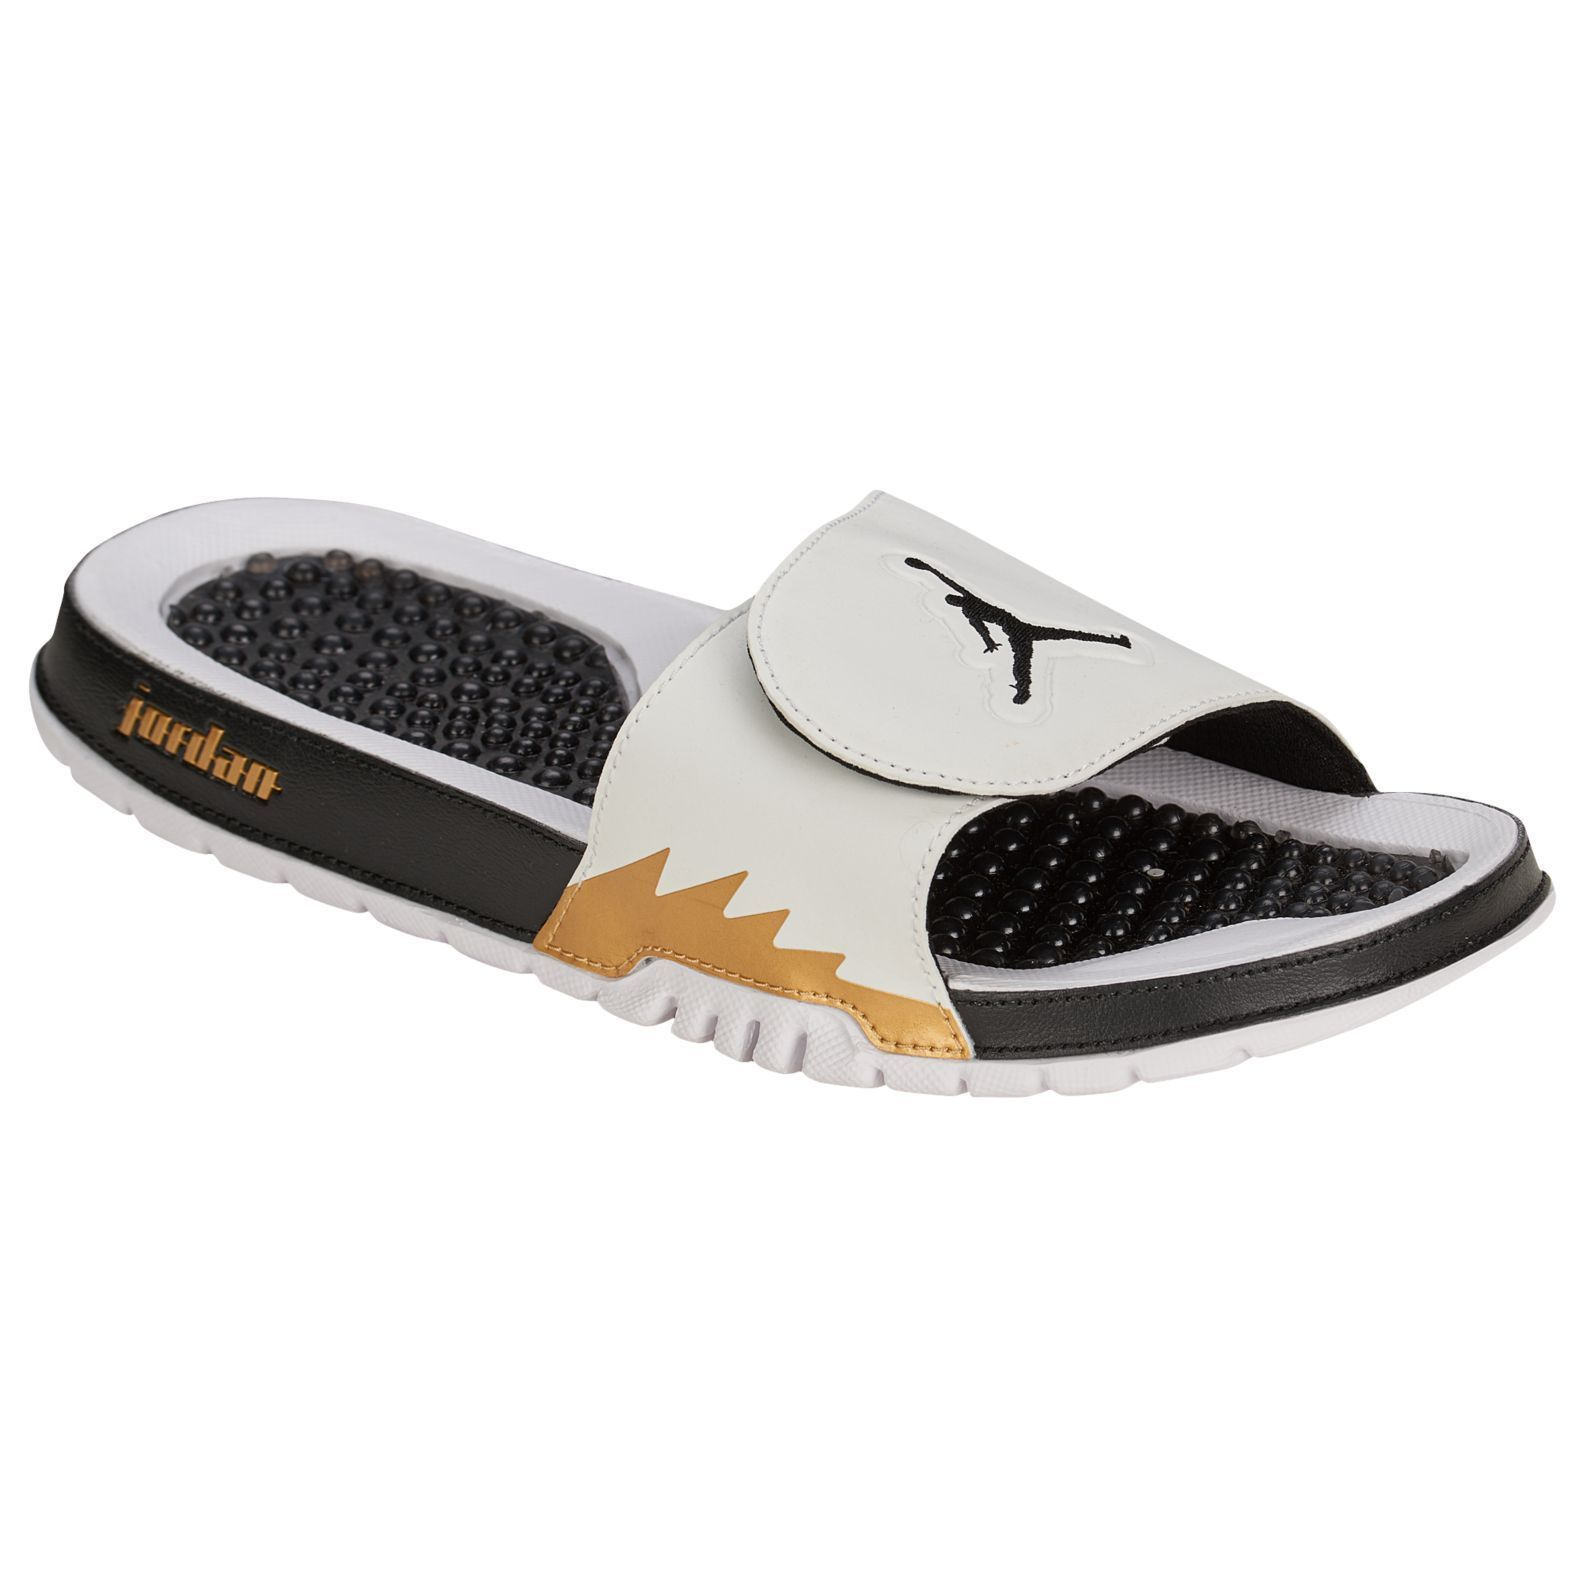 0d6741283545d Nike Air Jordan Mens Retro 5 Hydro Slides Shoes Flip Flops Size 11 ...